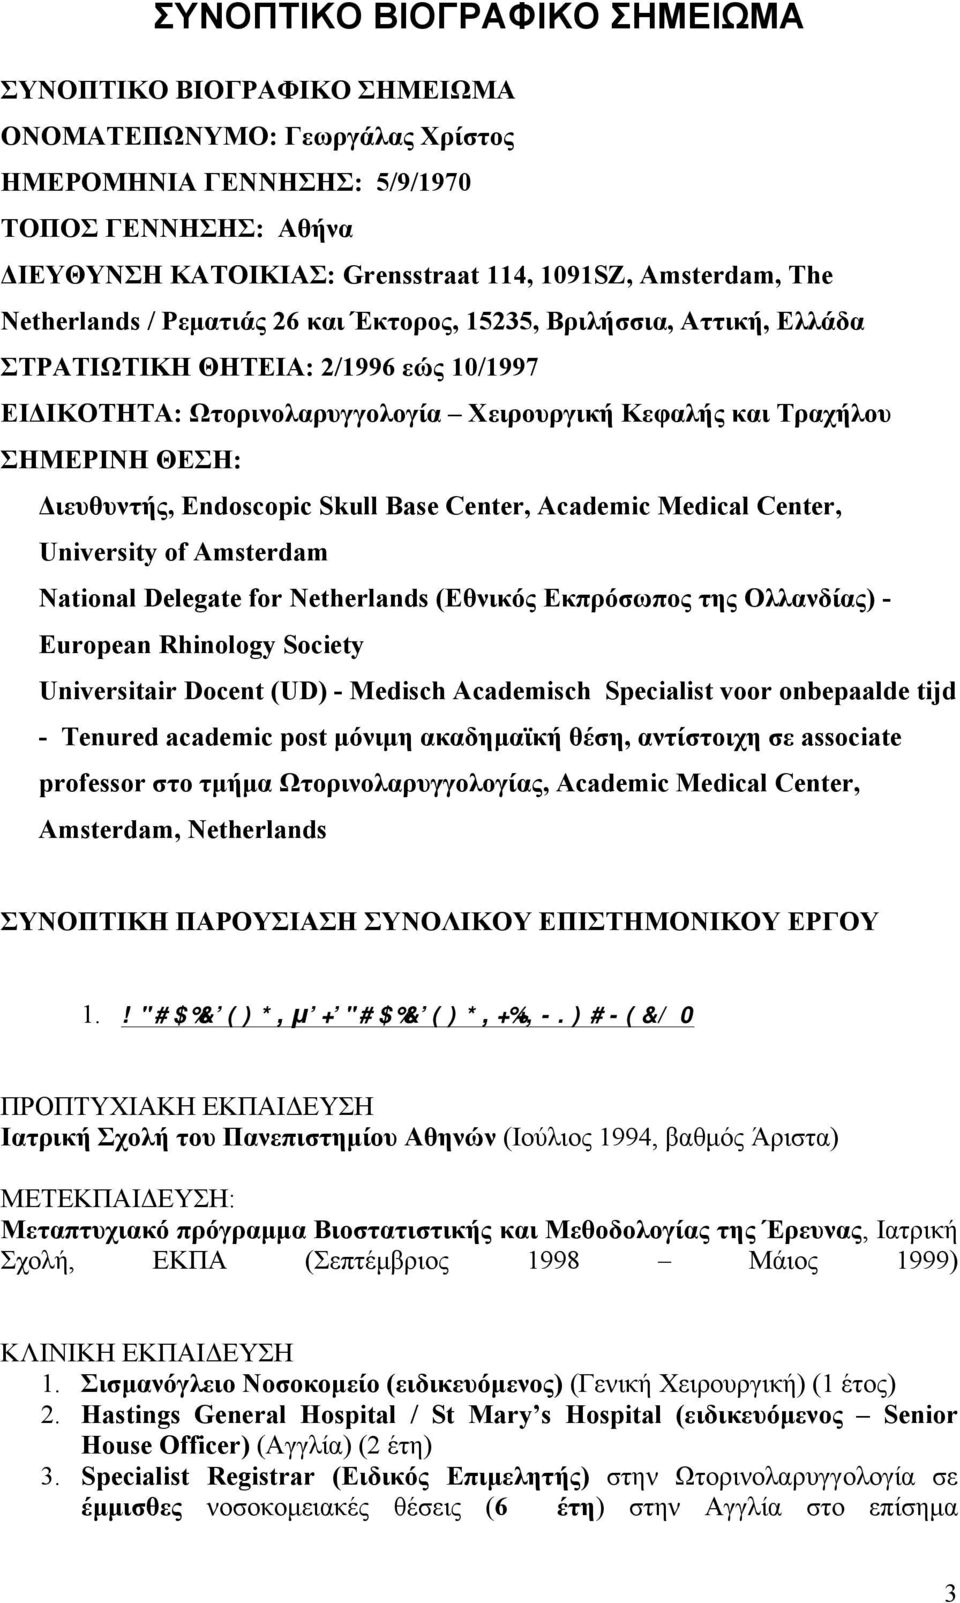 ΘΕΣΗ: Διευθυντής, Endoscopic Skull Base Center, Academic Medical Center, University of Amsterdam National Delegate for Netherlands (Εθνικός Εκπρόσωπος της Ολλανδίας) - European Rhinology Society